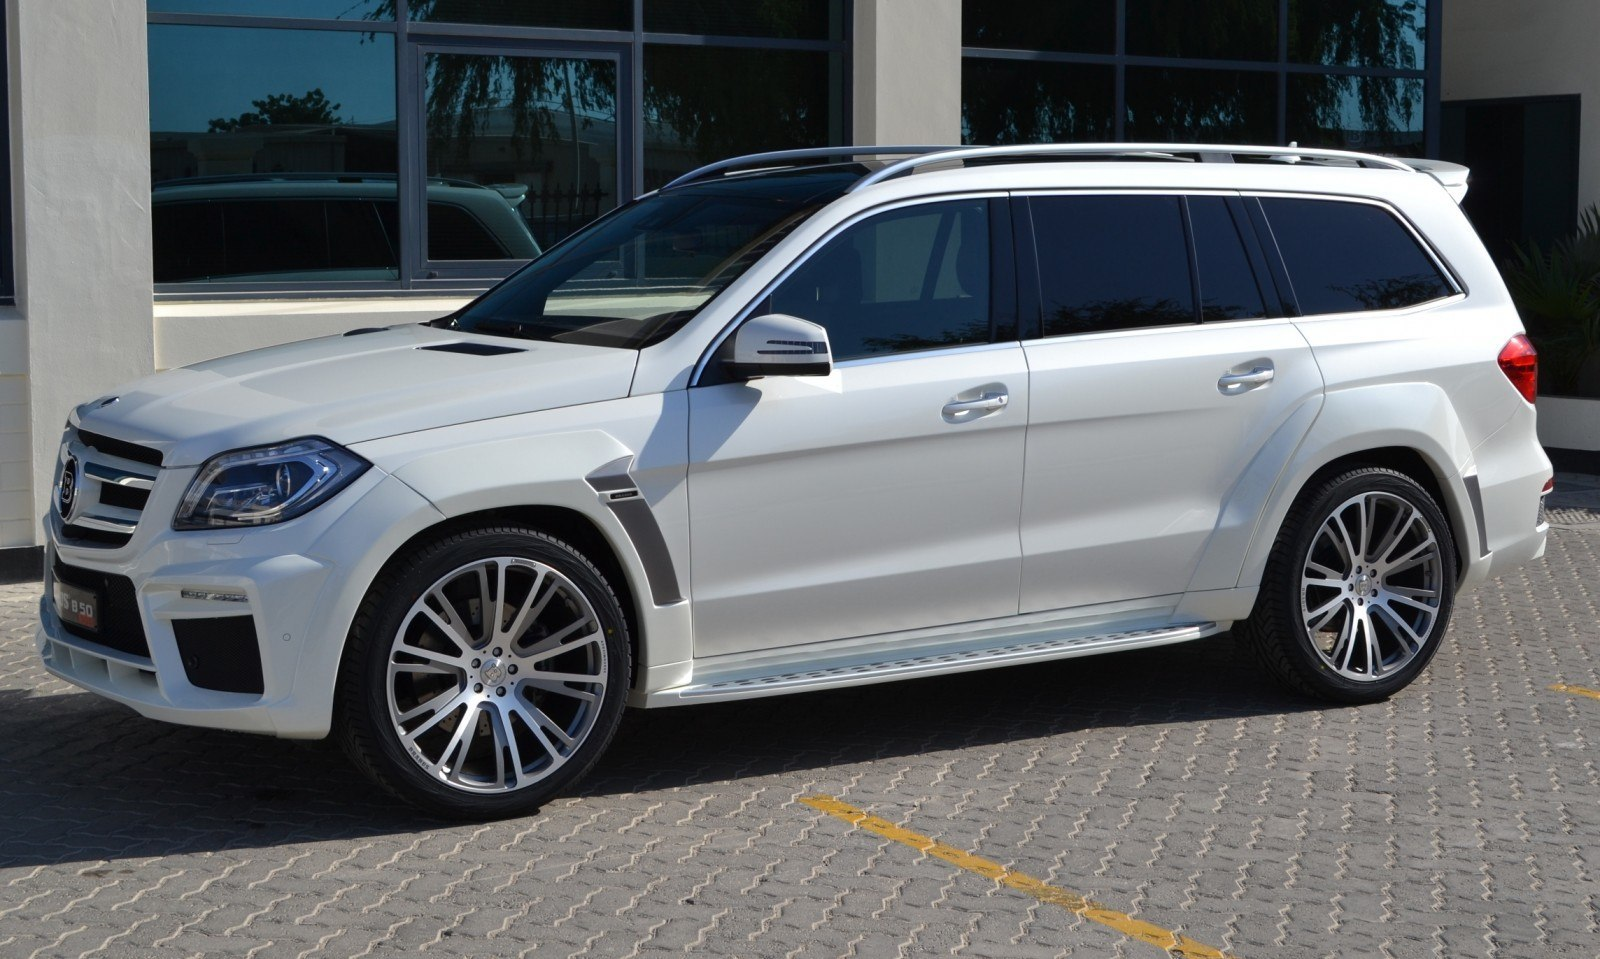 Brabus b63s 700 widestar upgrades for mercedes benz gl for Mercedes benz upgrades